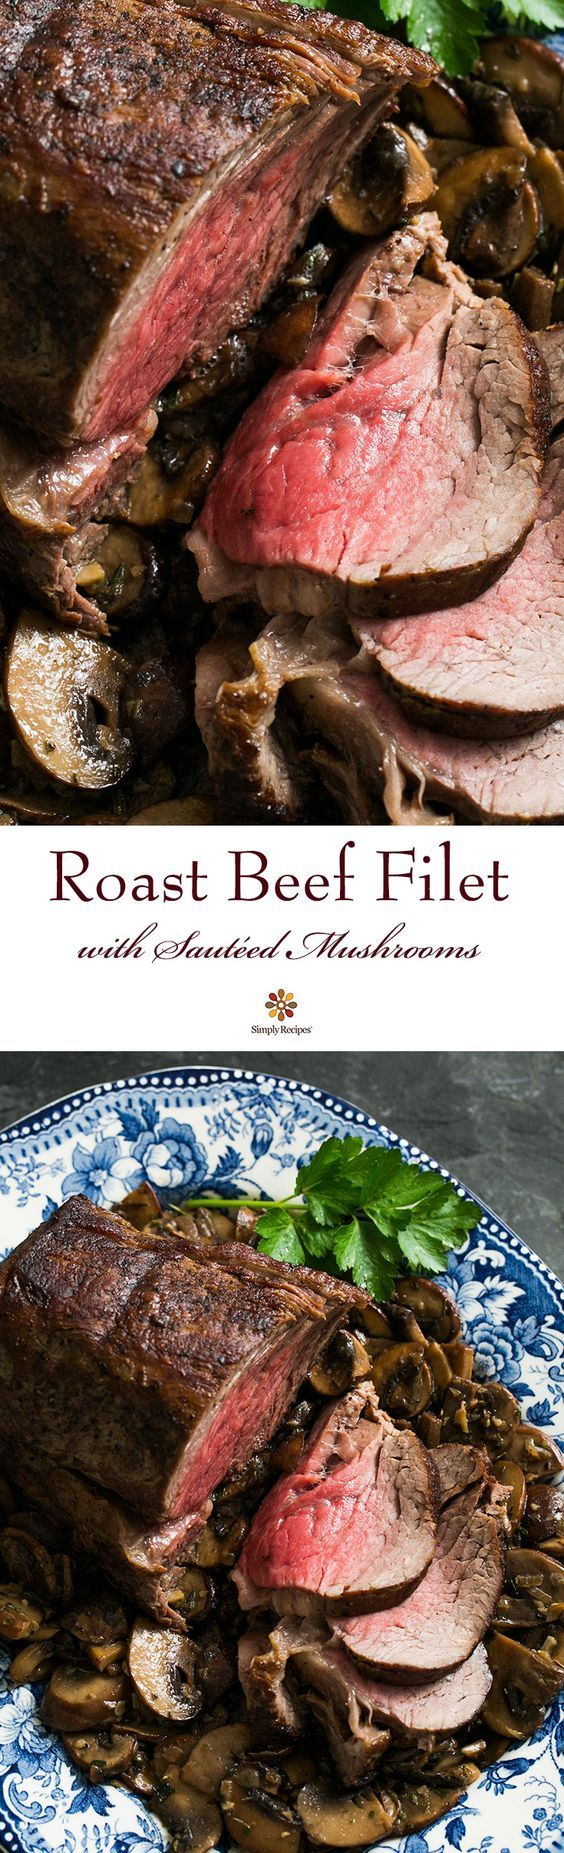 Roast Filet of Beef Tenderloin, seared then oven roasted, served with mushrooms sautéed in the pan drippings with butter and herbs. Perfect for a special meal or entertaining! Get the recipe on SimplyRecipes.com